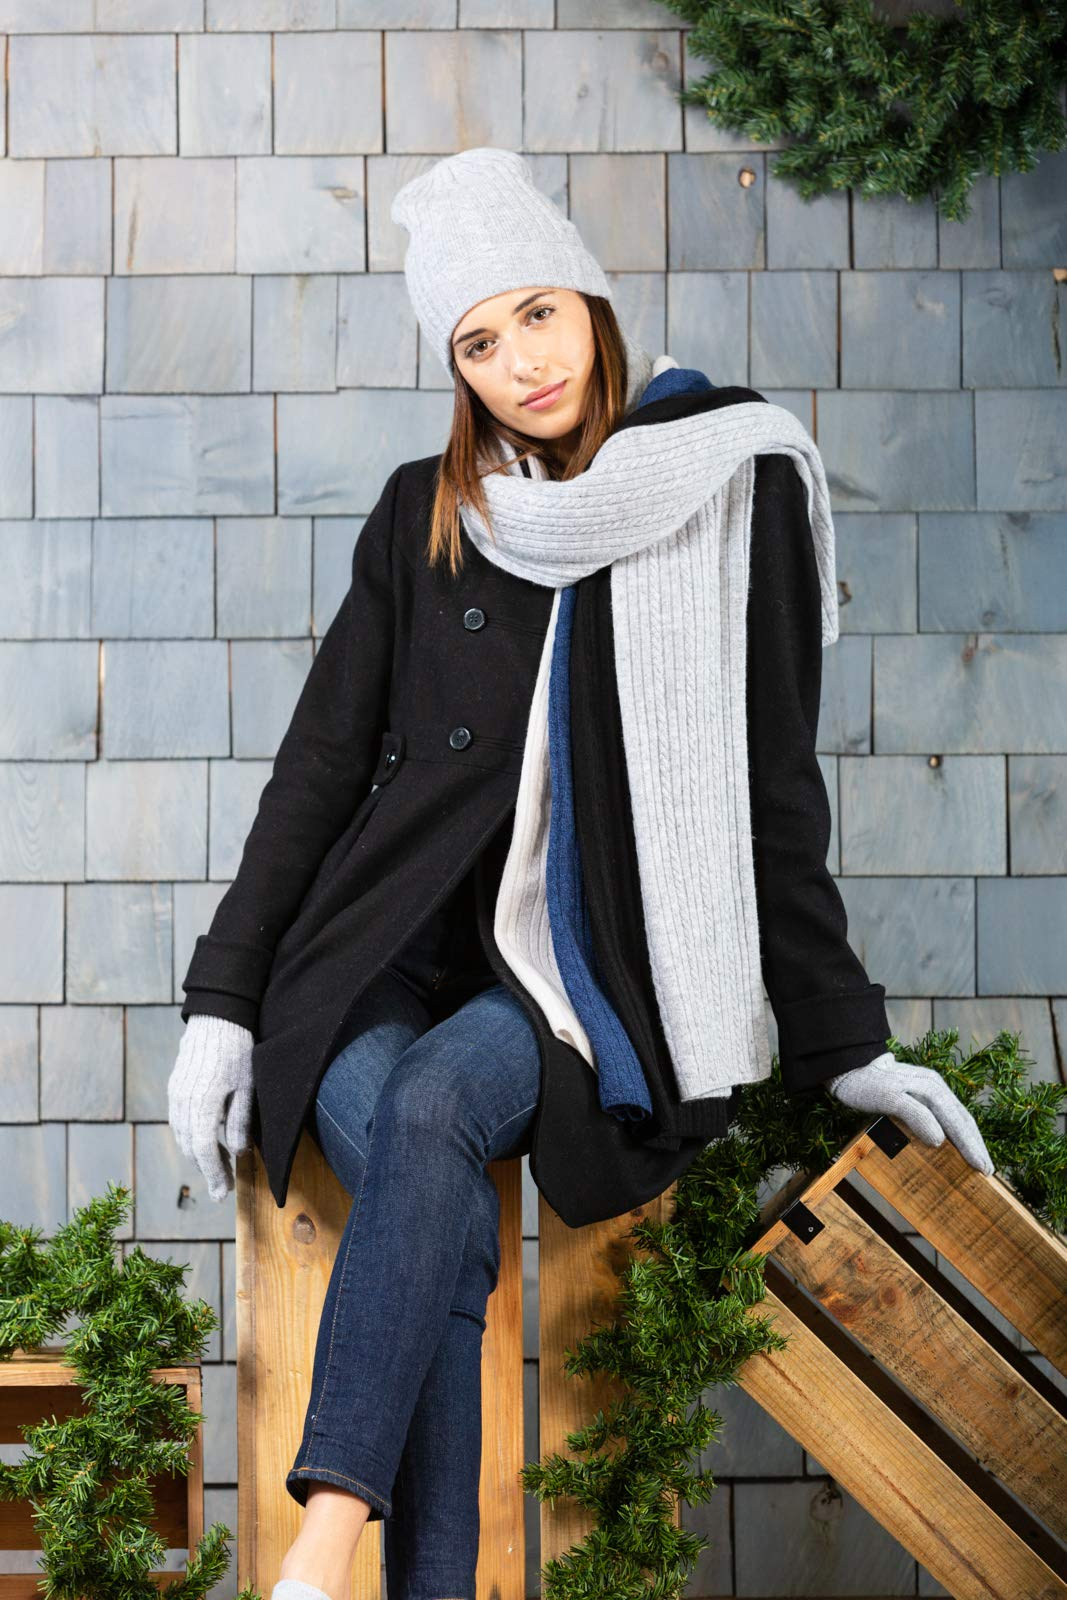 Fishers Finery Women's Cashmere Cable Knitted Scarf; Christmas Gift (Black) by Fishers Finery (Image #6)